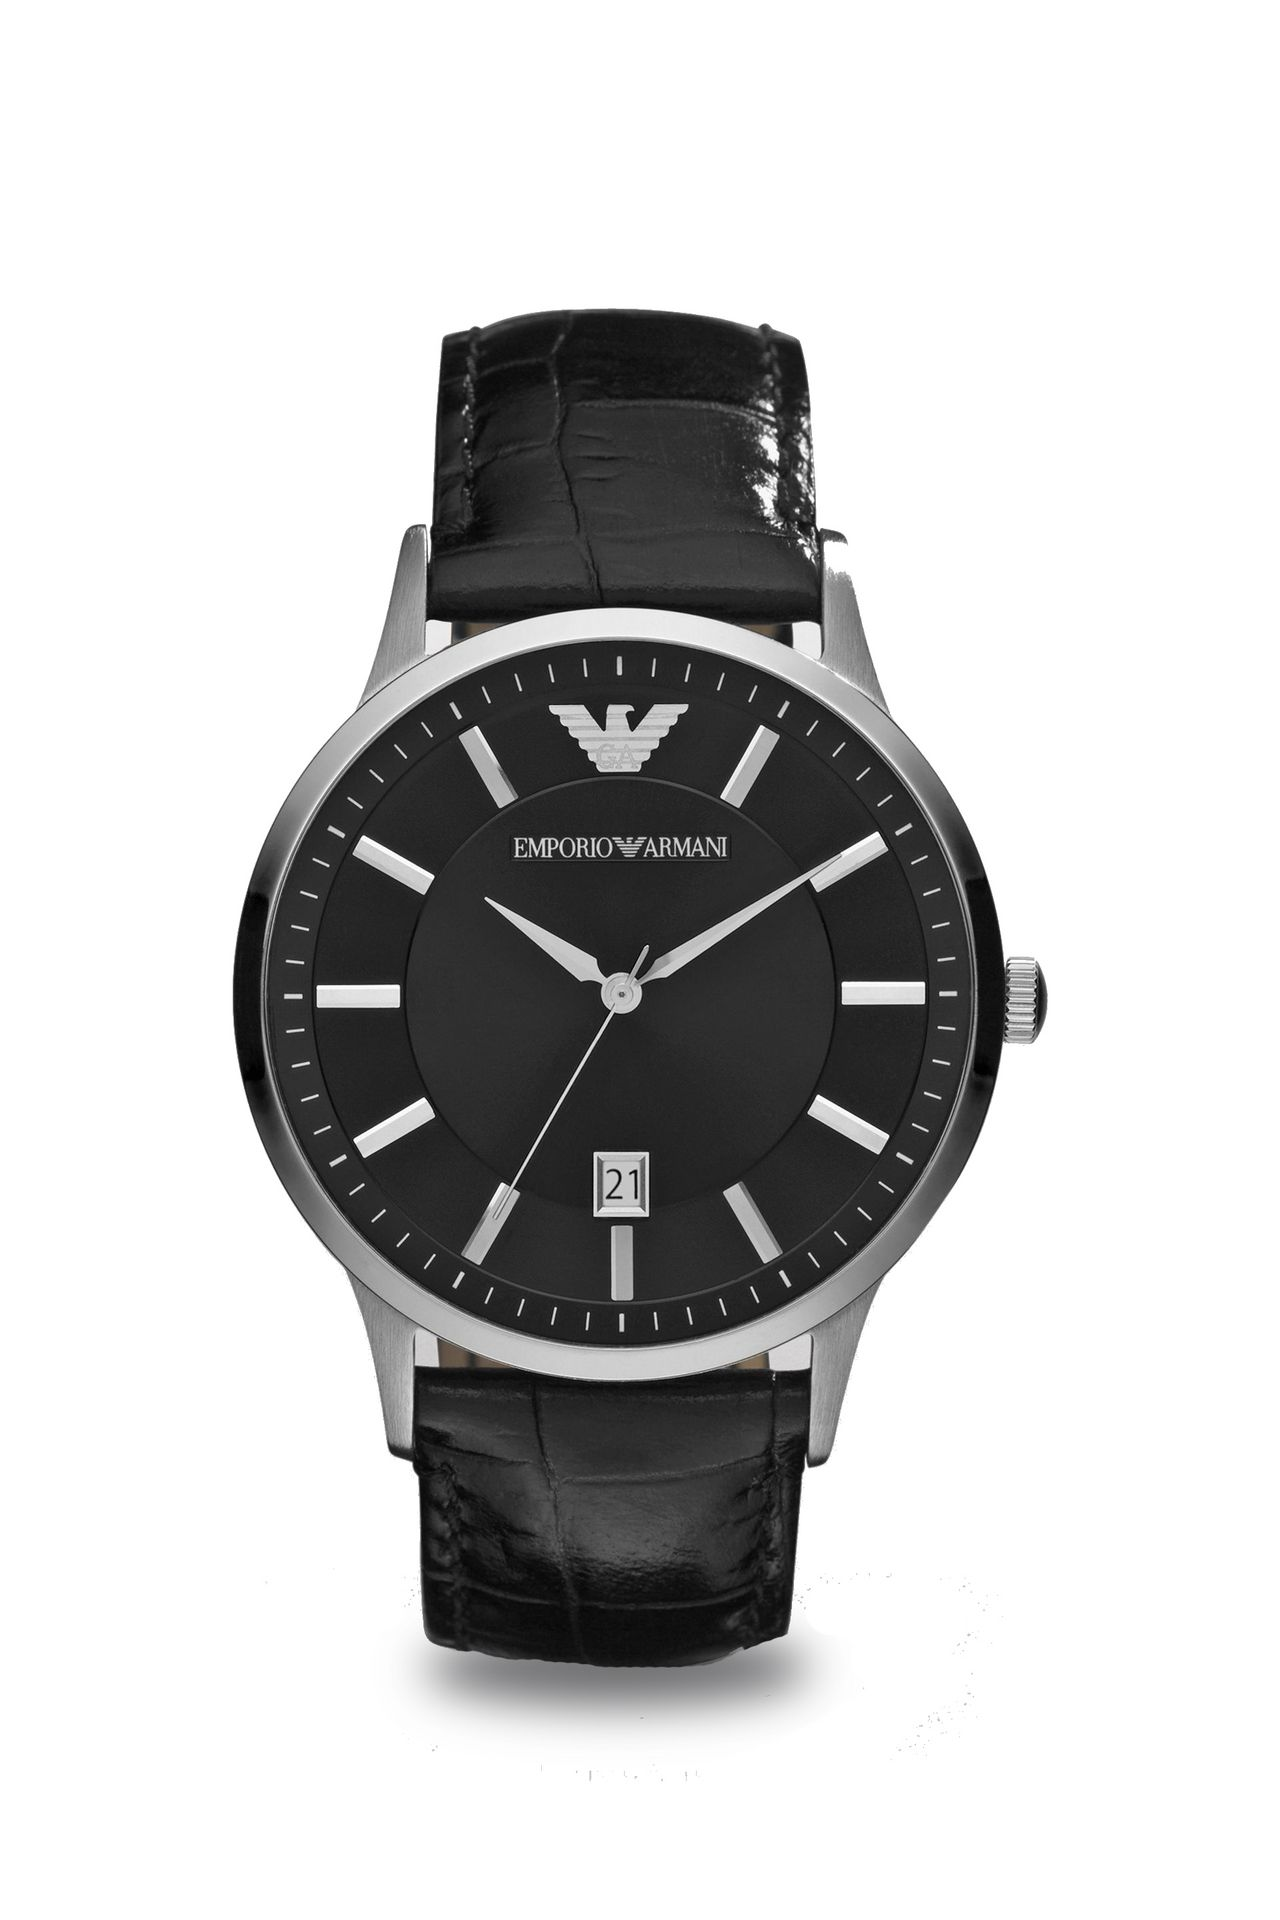 emporio armani men watch leather armani com fashion watches watches men by armani 0